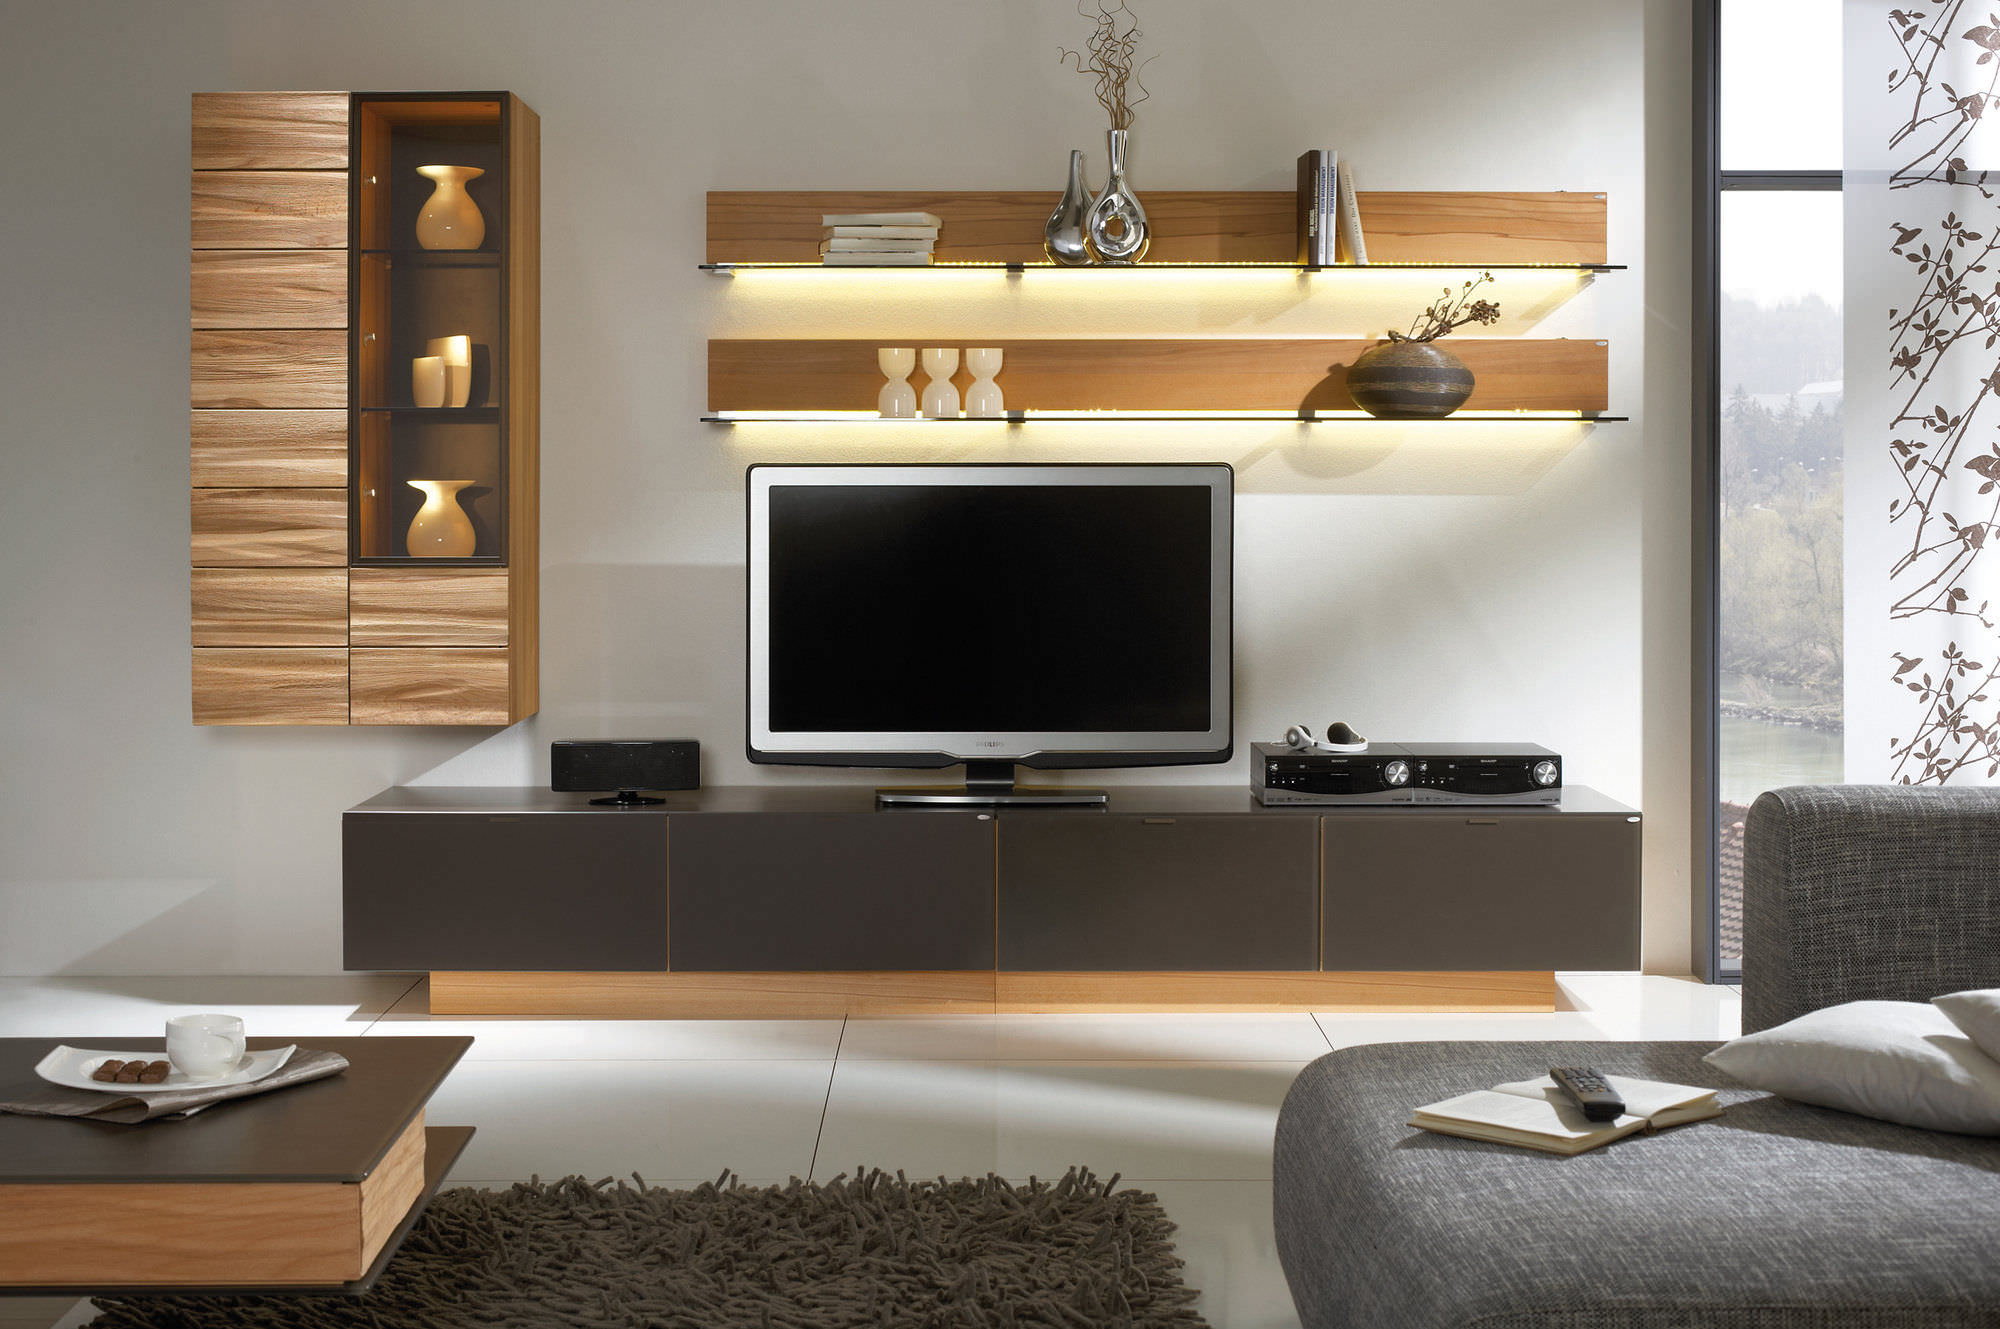 Living Room Tv 20 Modern Tv Unit Design Ideas For Bedroom And Living Room